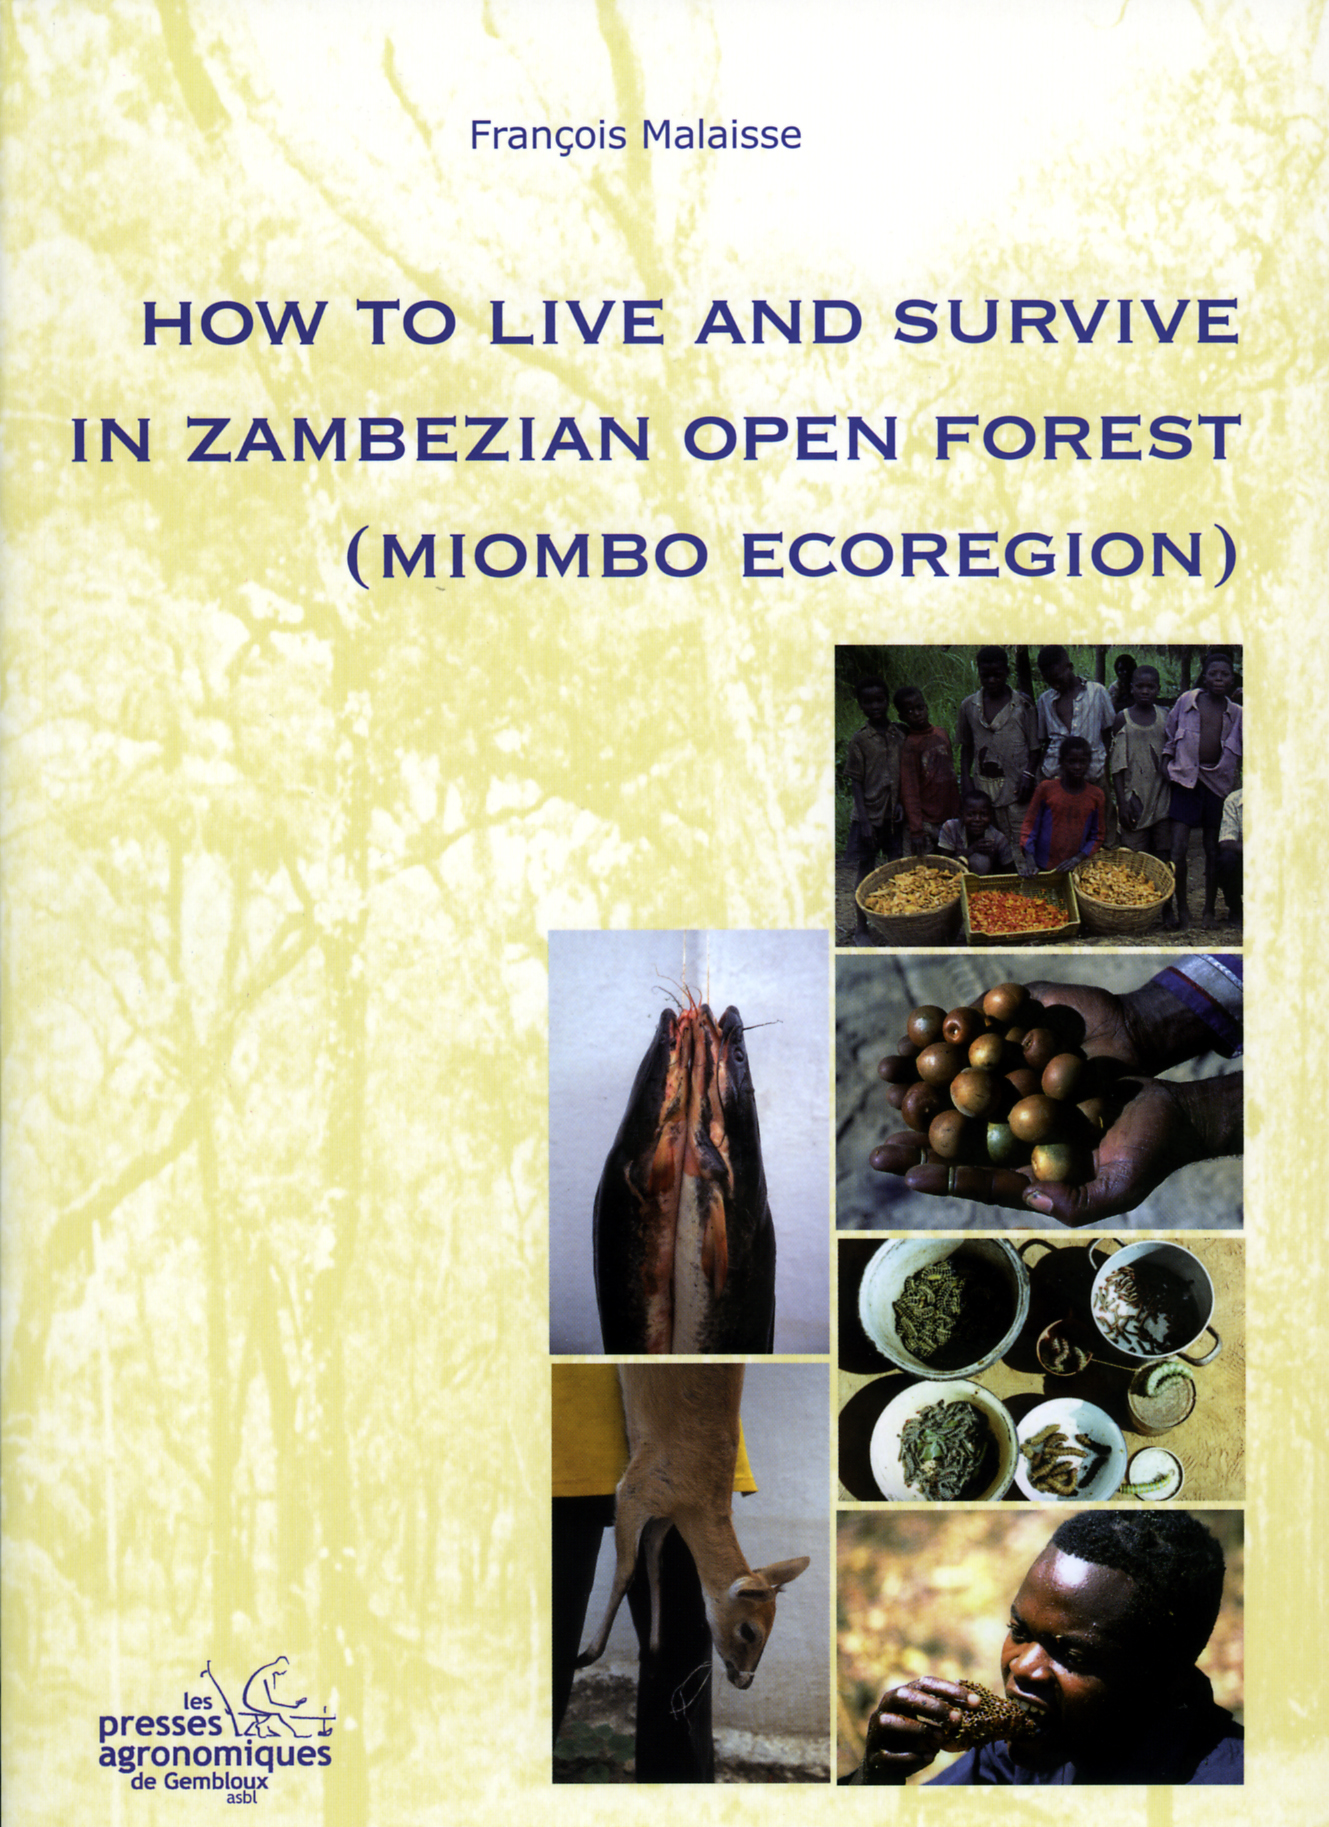 HOW TO LIVE AND SURVIVE IN ZAMBEZIAN OPEN FOREST (MIOMBO ECOREGION)